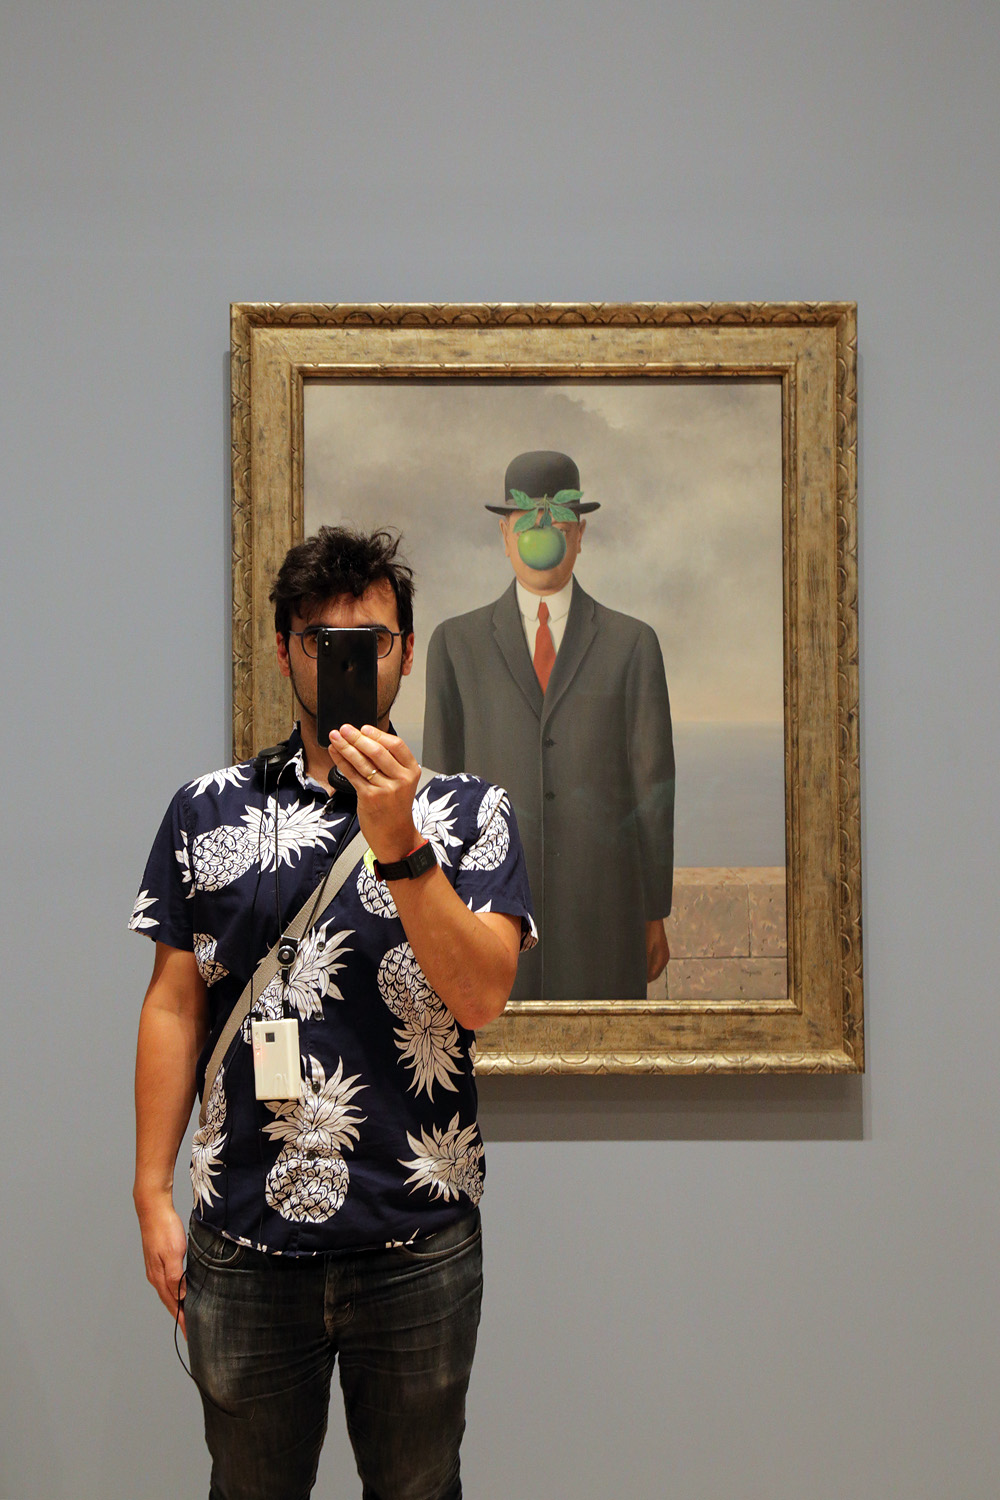 18-marcellomagritte Magritte Exhibition, 